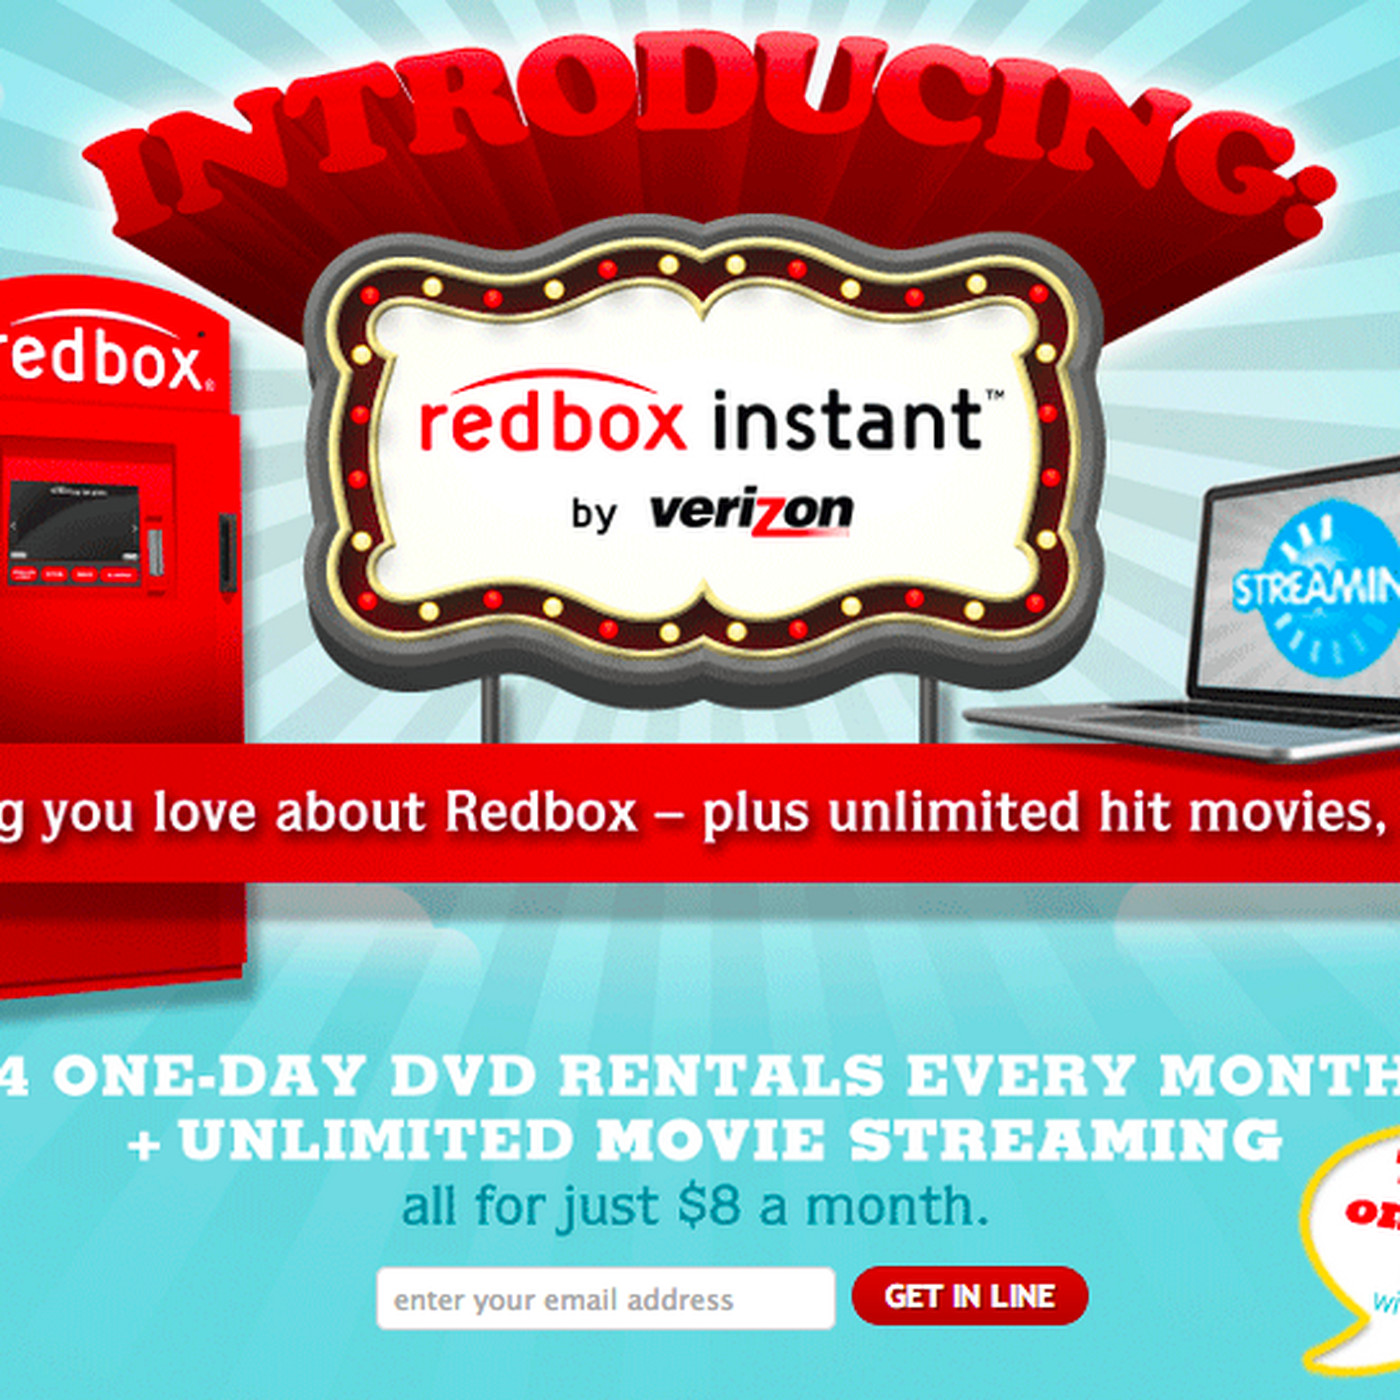 redbox instant coming soon to xbox 360 polygon